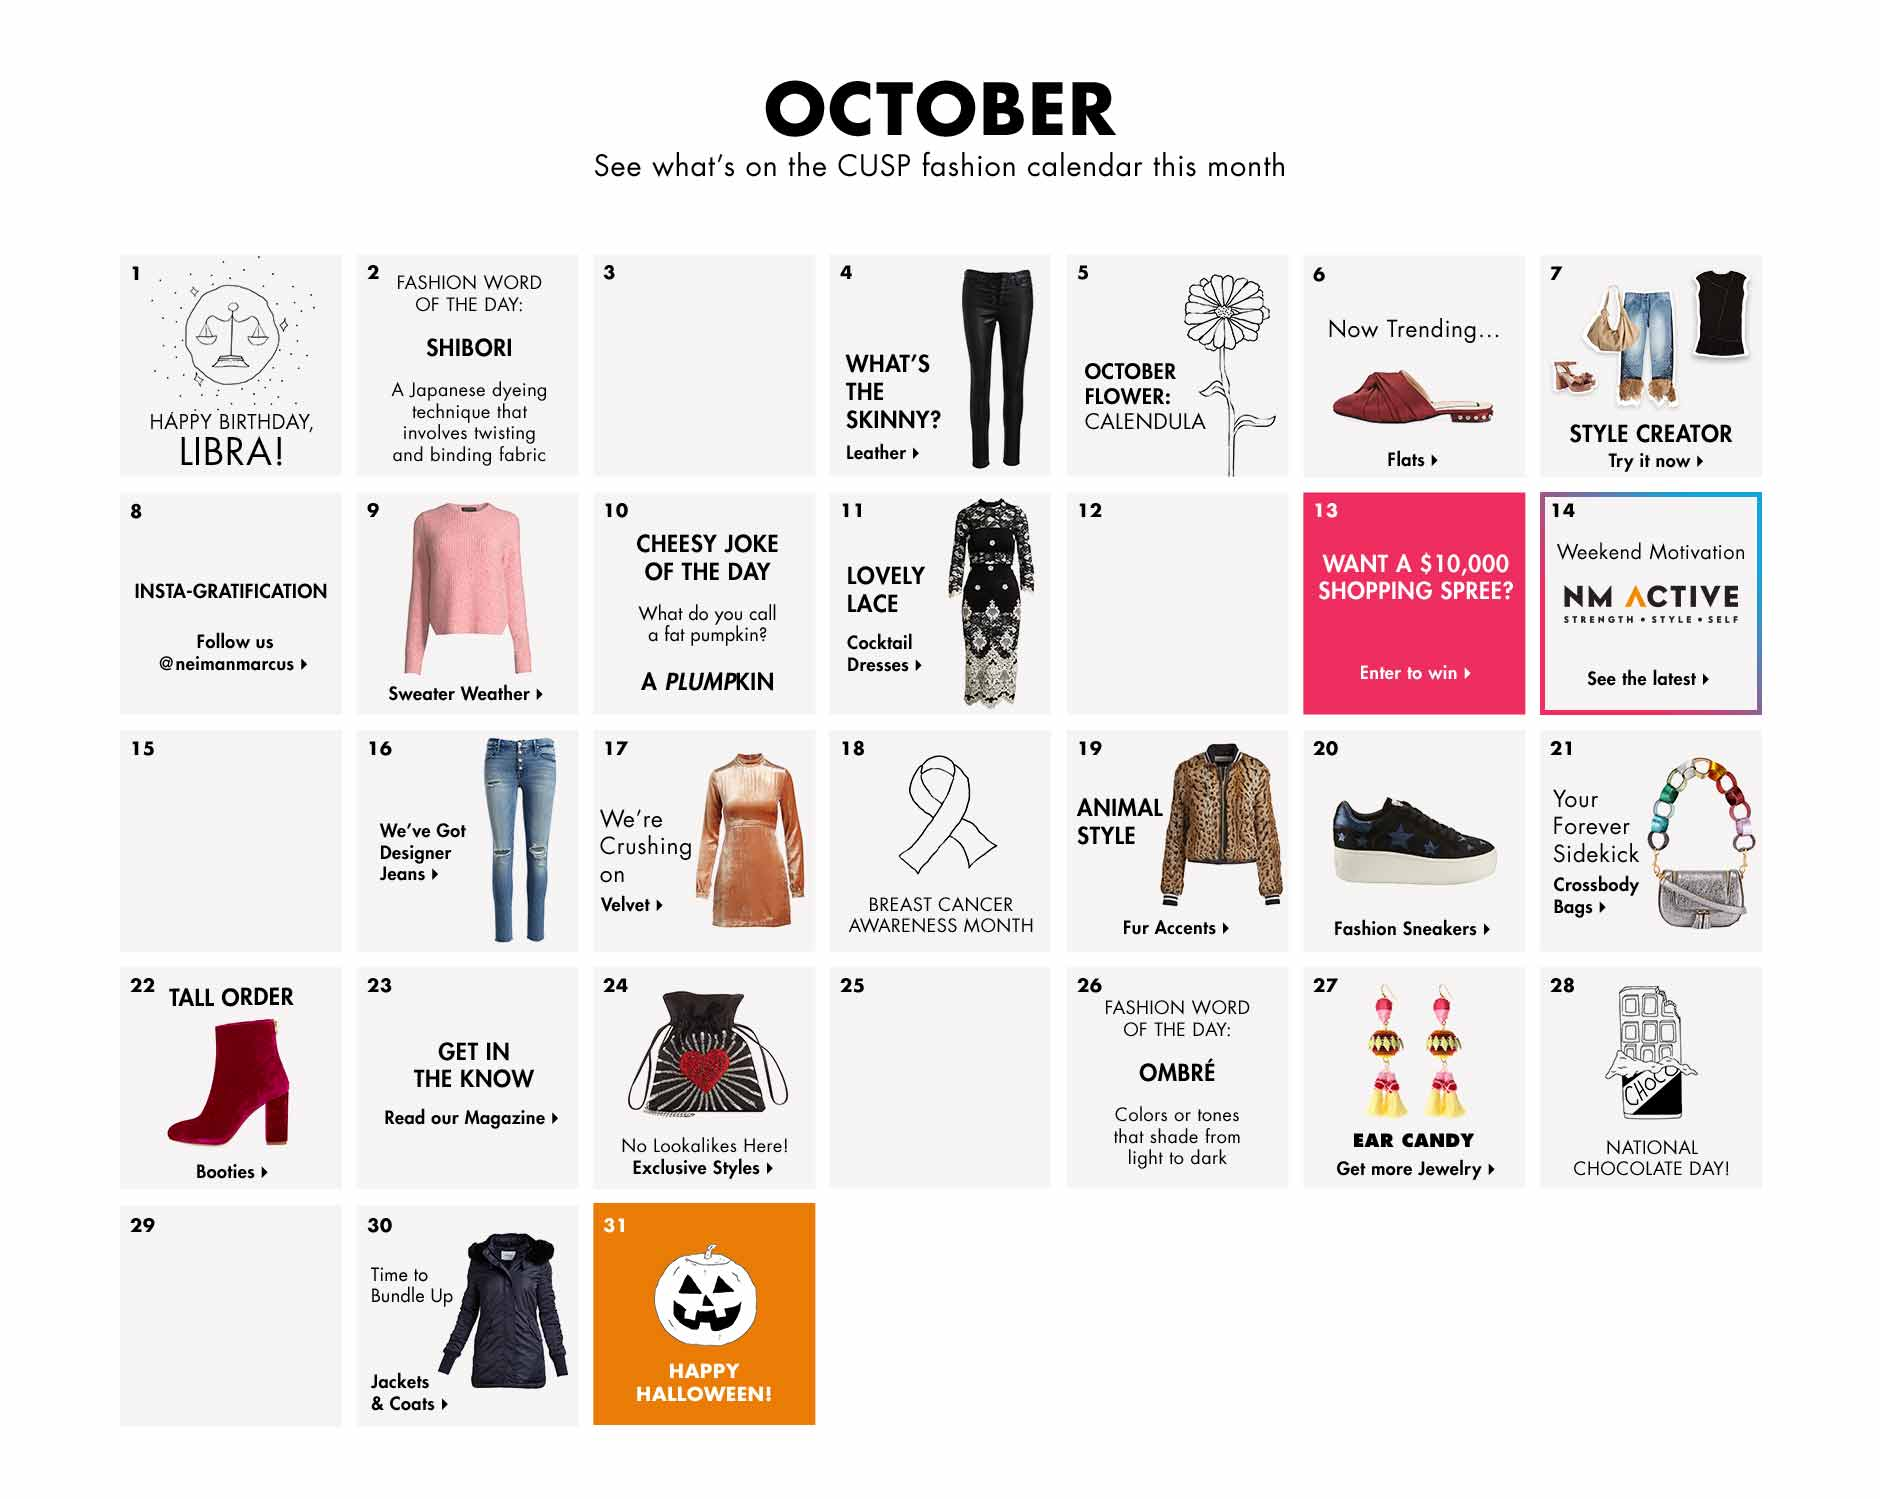 October - See what's on the CUSP fashion calendar this month